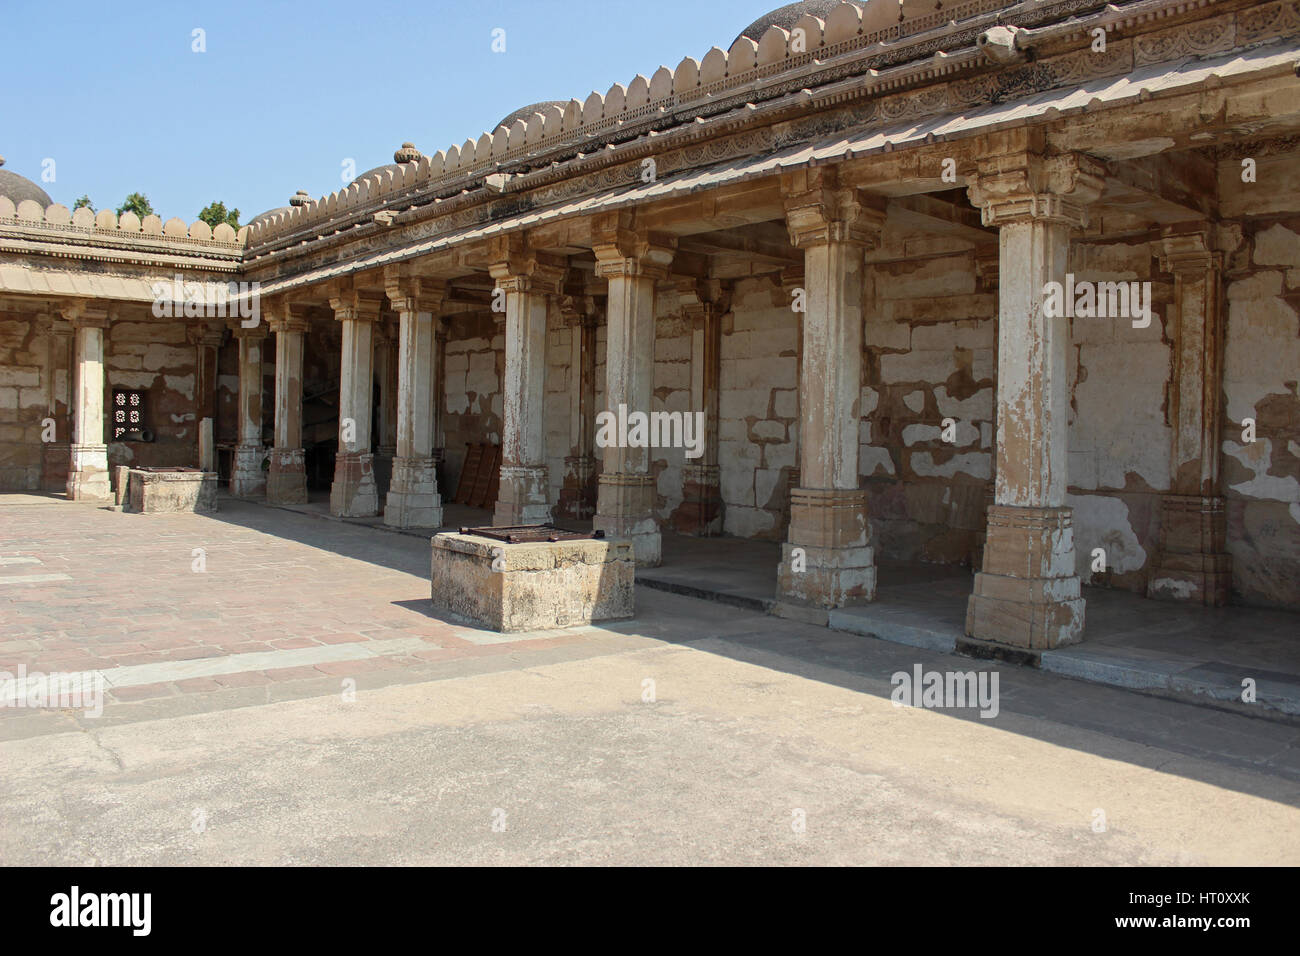 Colonnaded cloister of historic Tomb at Gujarat at Sarkhej Roza mosque in Ahmedabad, India - Stock Image